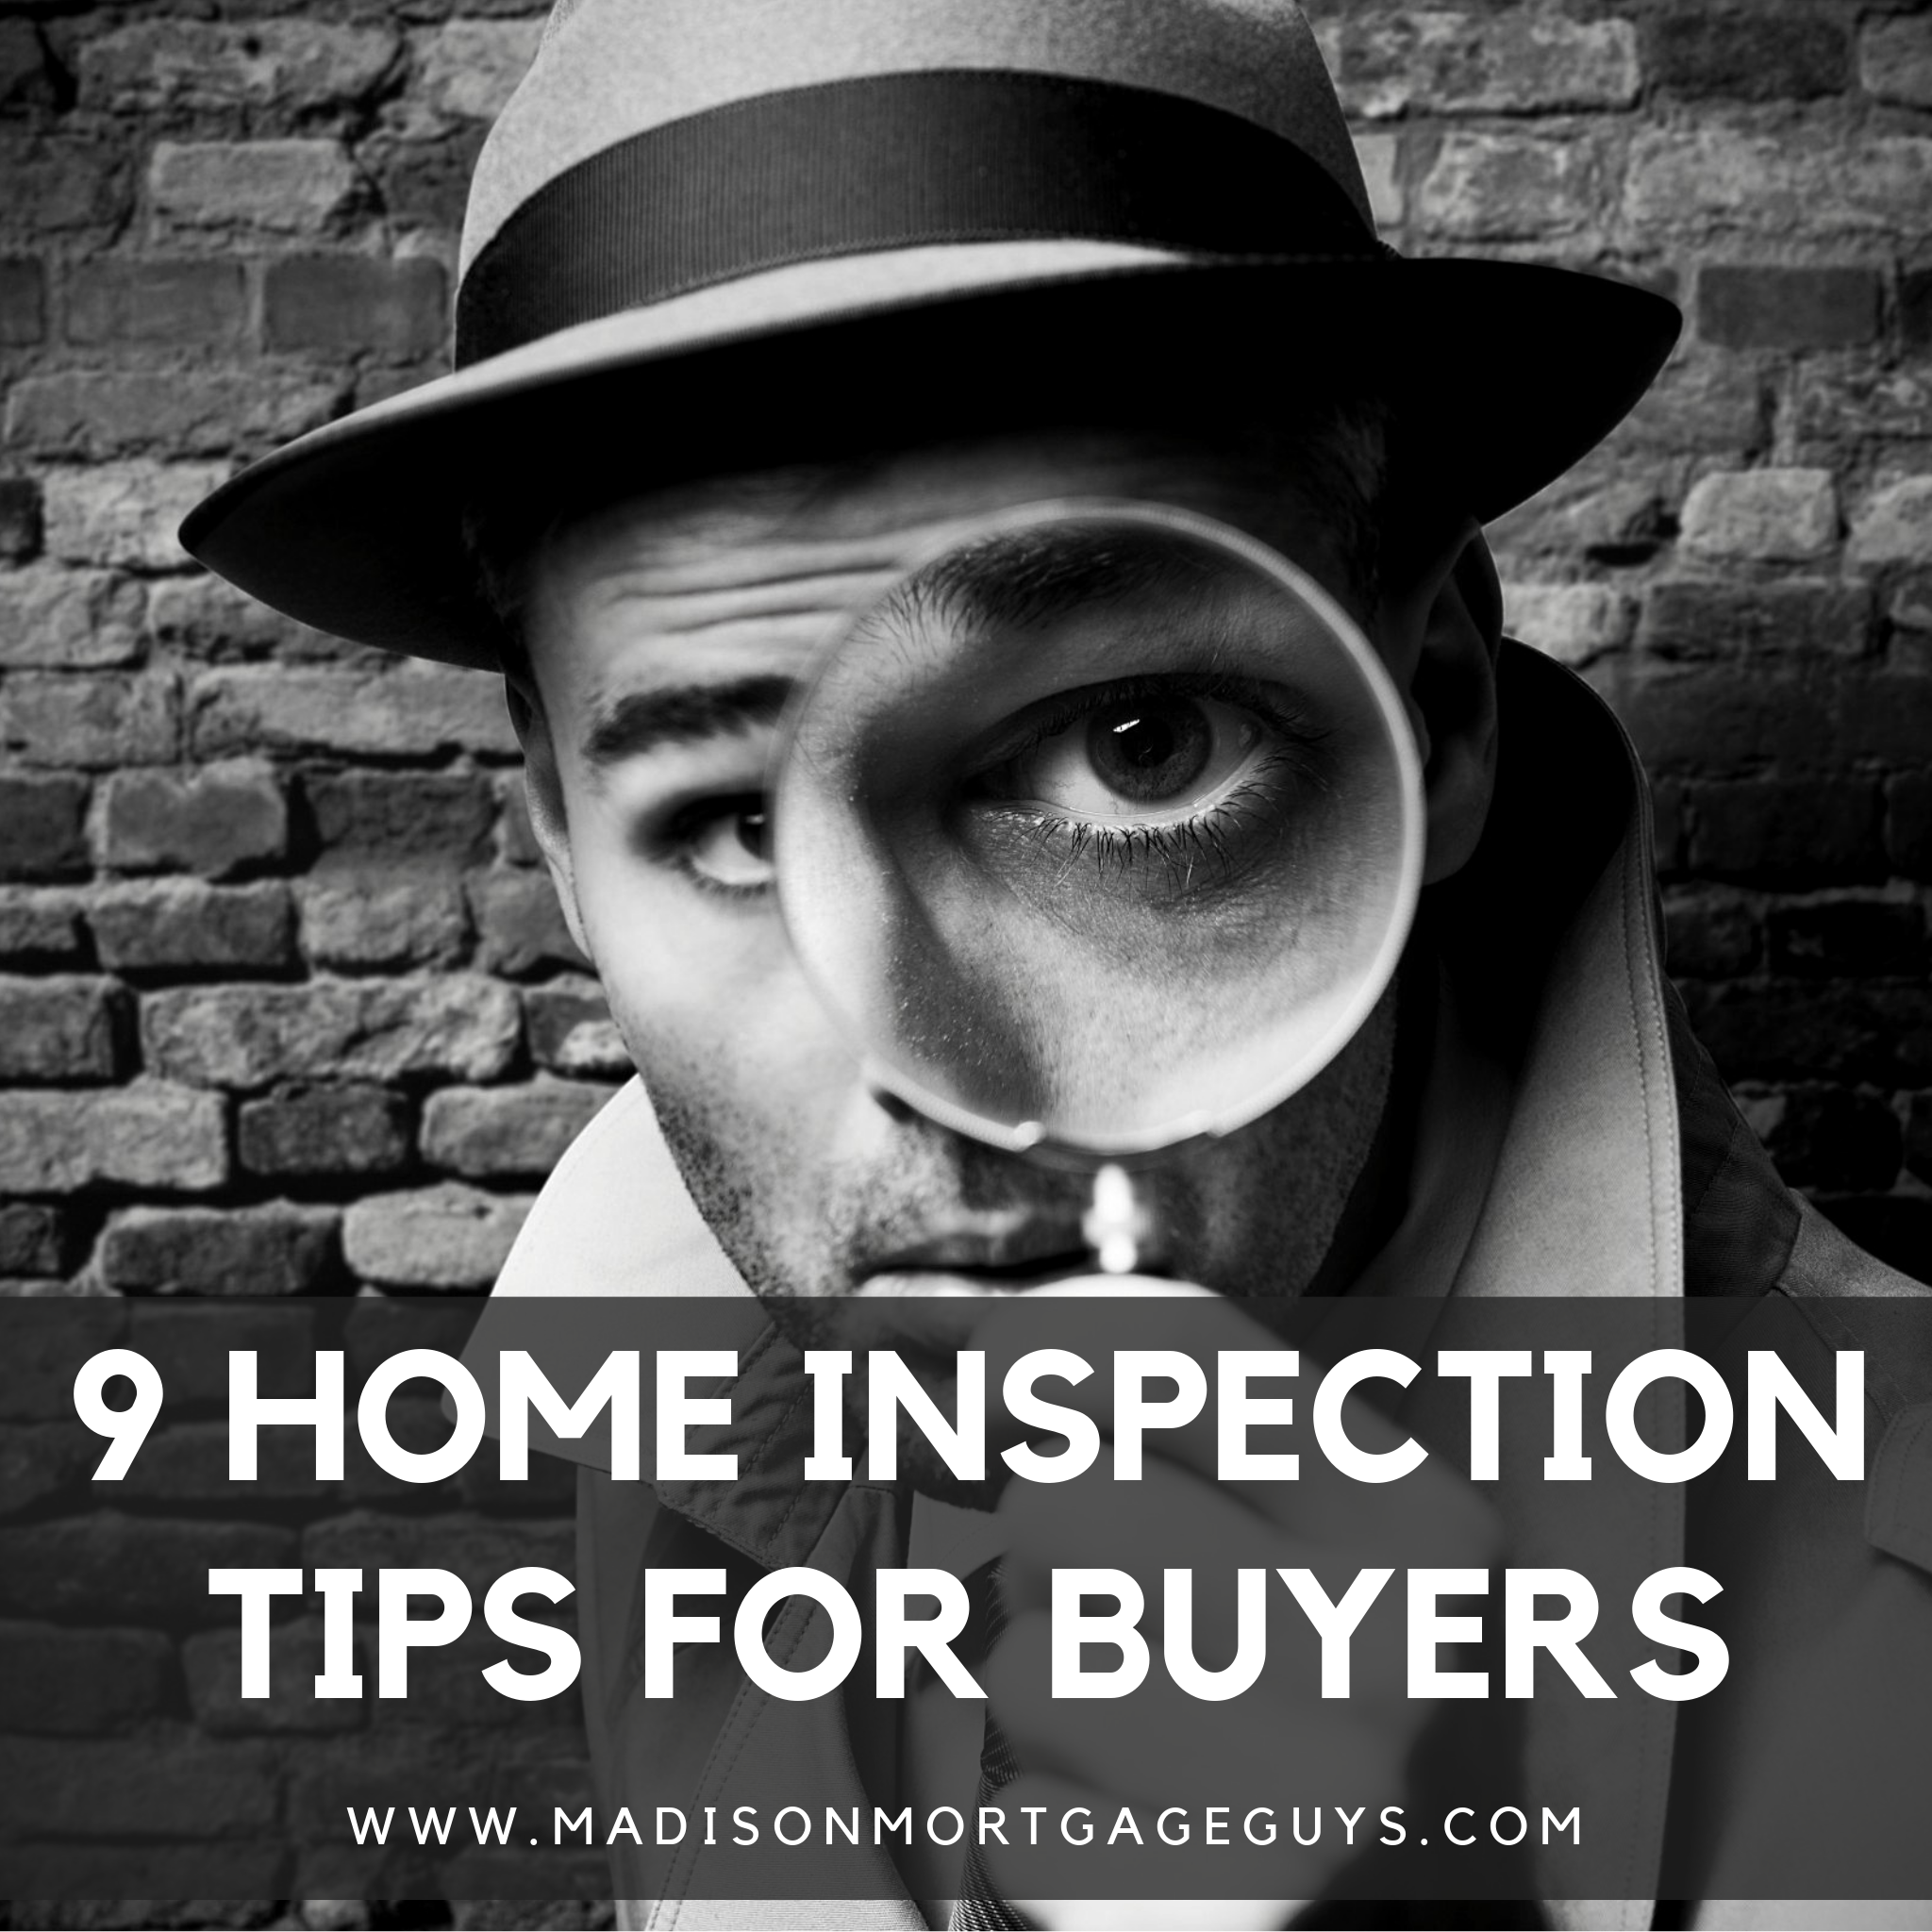 9 Home Inspection Tips For Buyers Home Inspection Tips For Buyers on home packing tips, home finishing tips, real estate tips, home storage tips, landscaping tips, home insurance tips, home energy tips, home safety tips, cleaning tips, home fitness tips, home title insurance, home security tips, home business tips, home management tips, home estate, home buying checklist, home home, home design tips, home construction tips, home care tips,